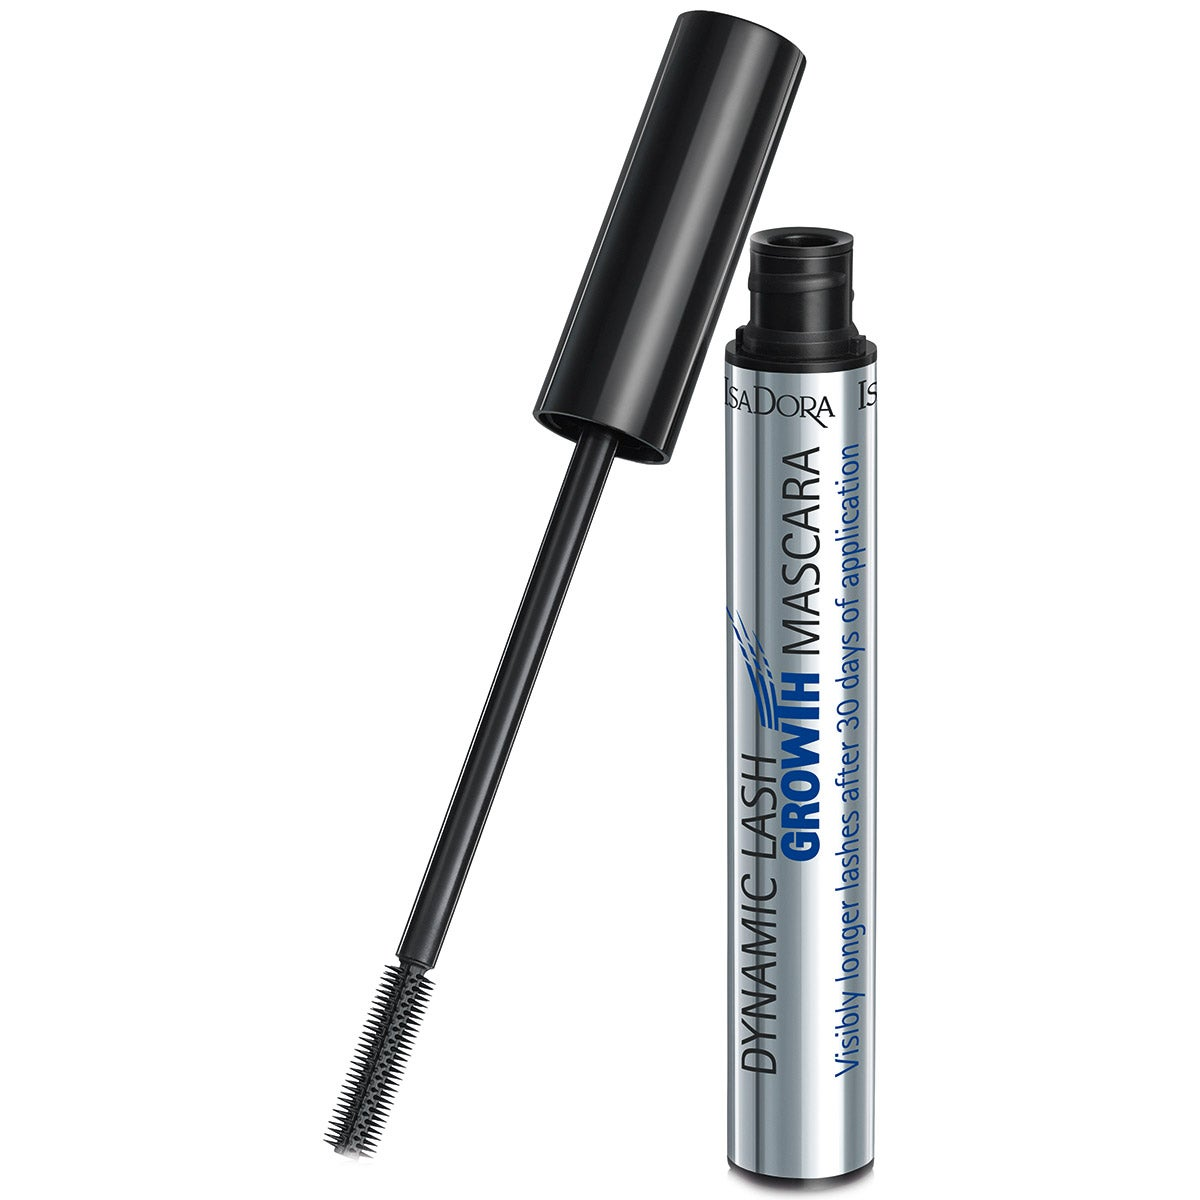 Dynamic Lash Growth Mascara, 7 ml IsaDora Mascara